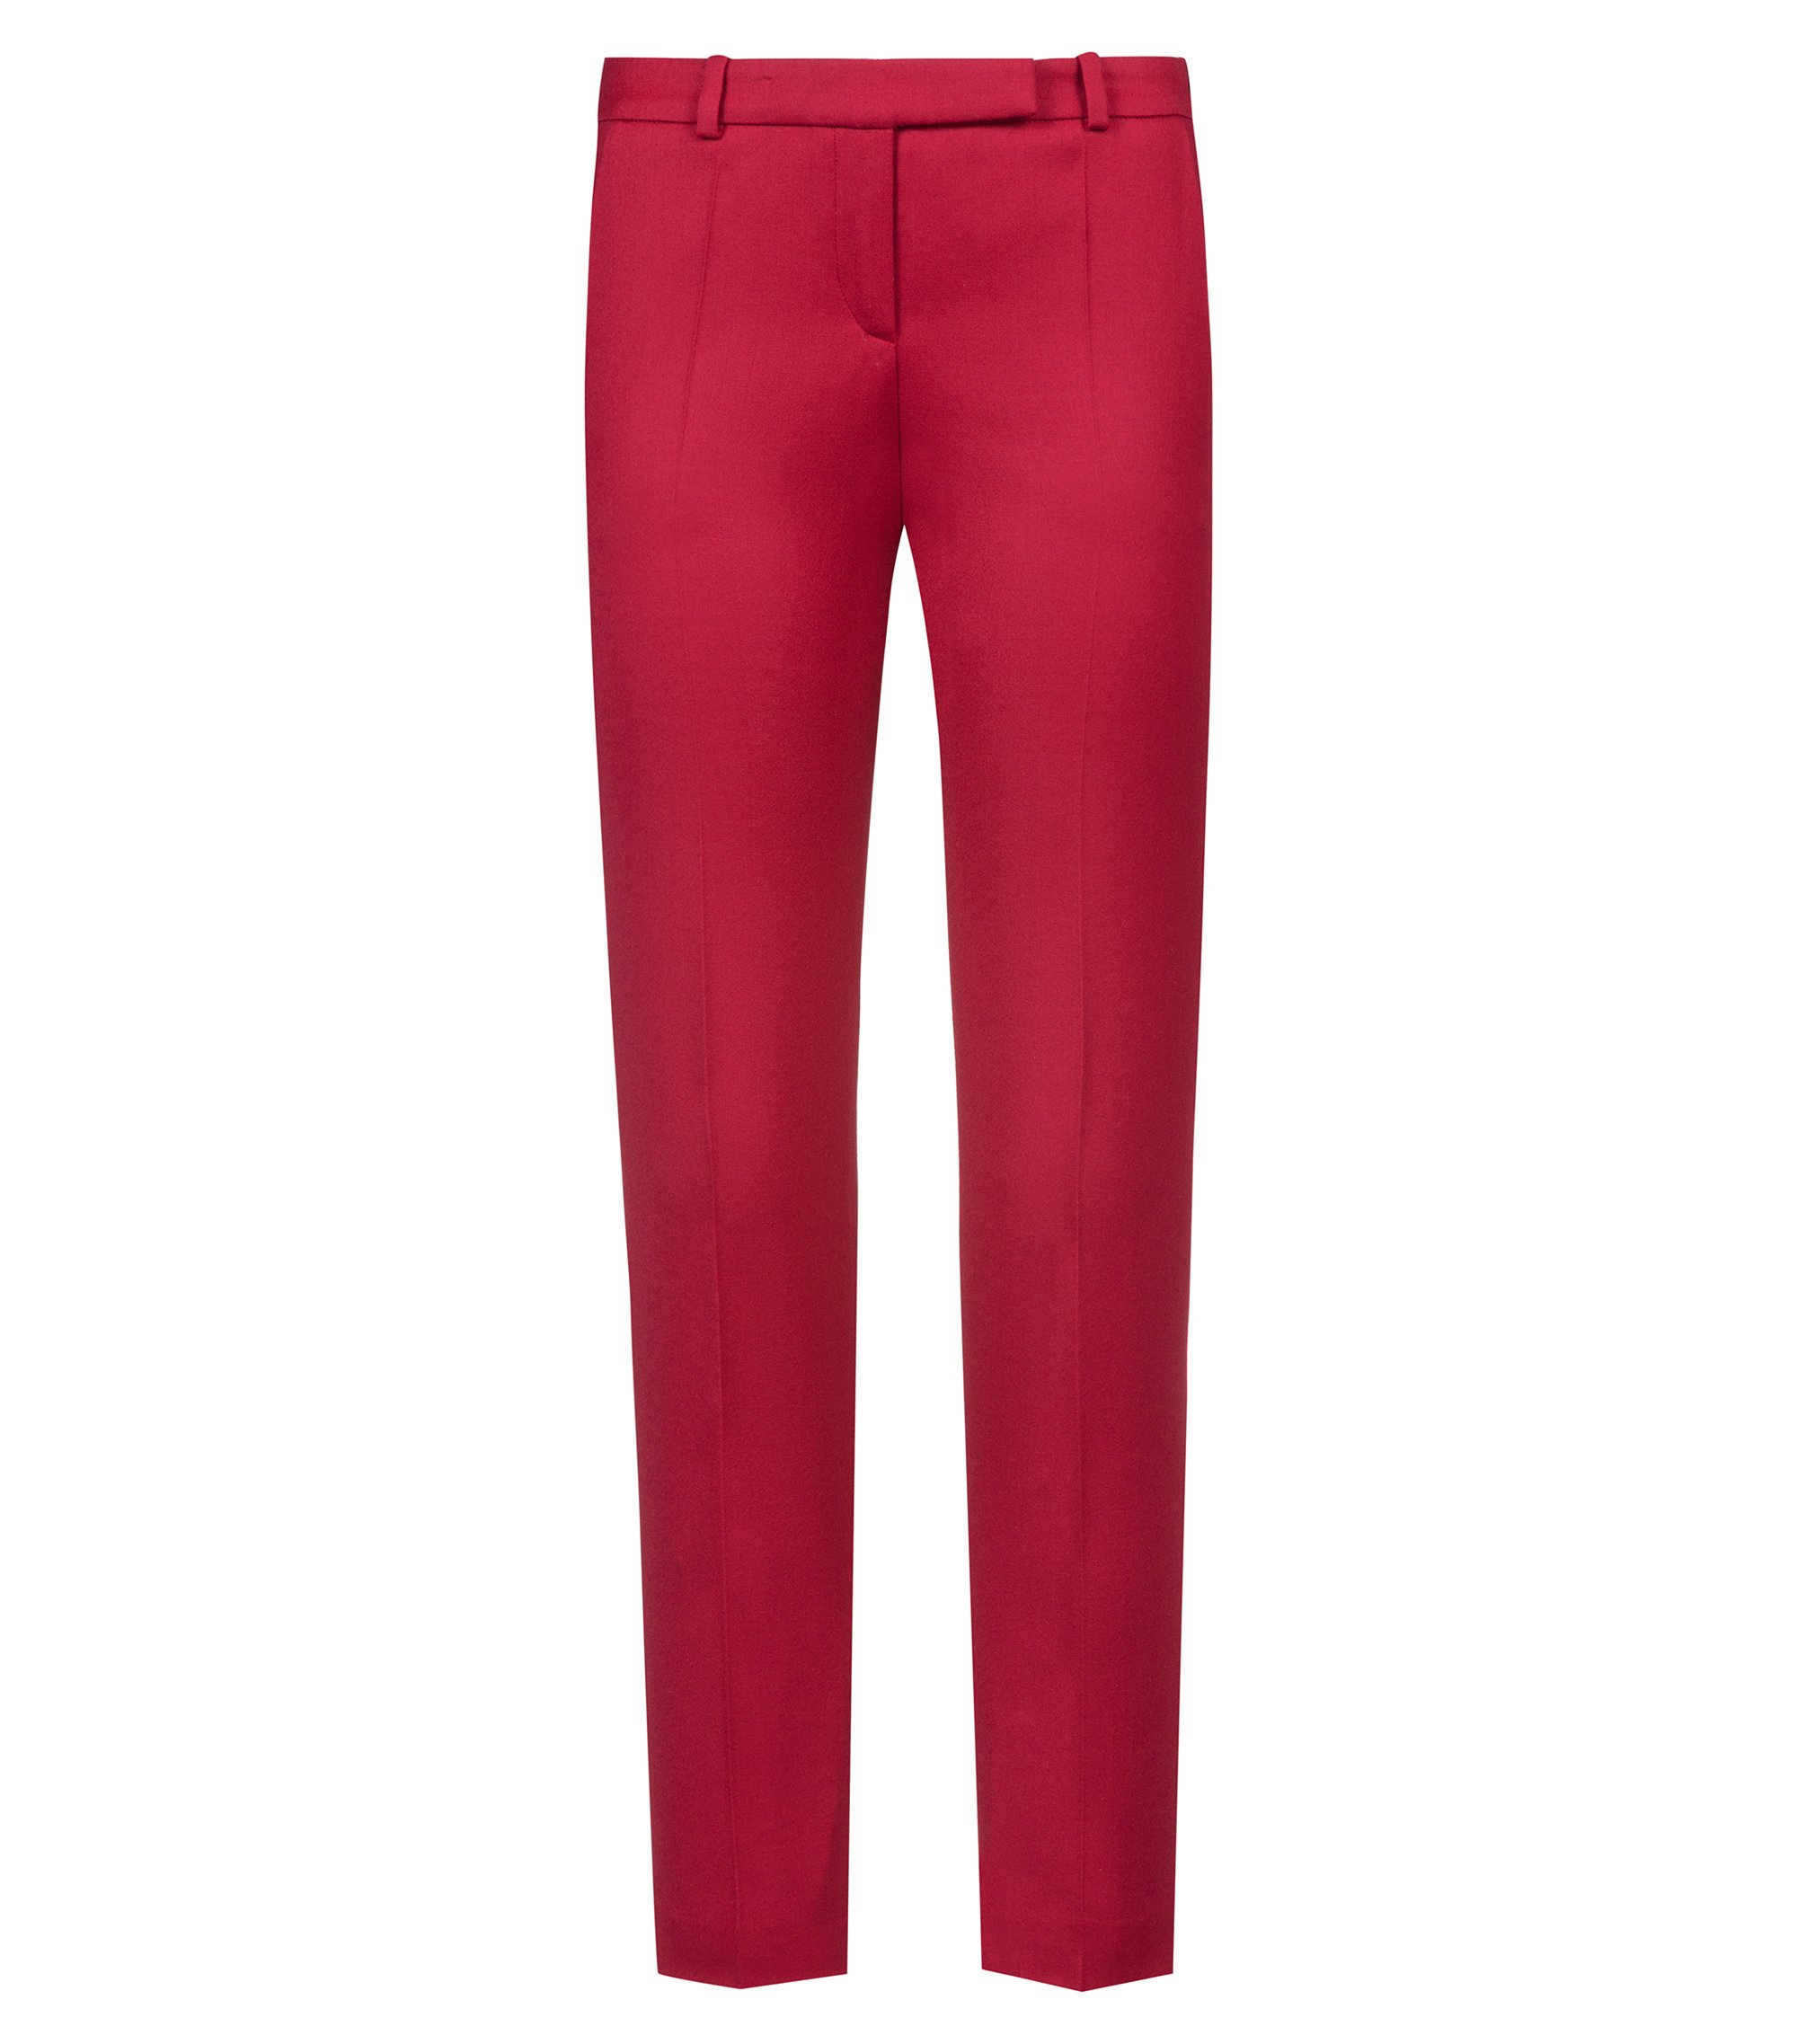 Pantalon cigarette Regular Fit en flanelle de laine vierge stretch, Rouge